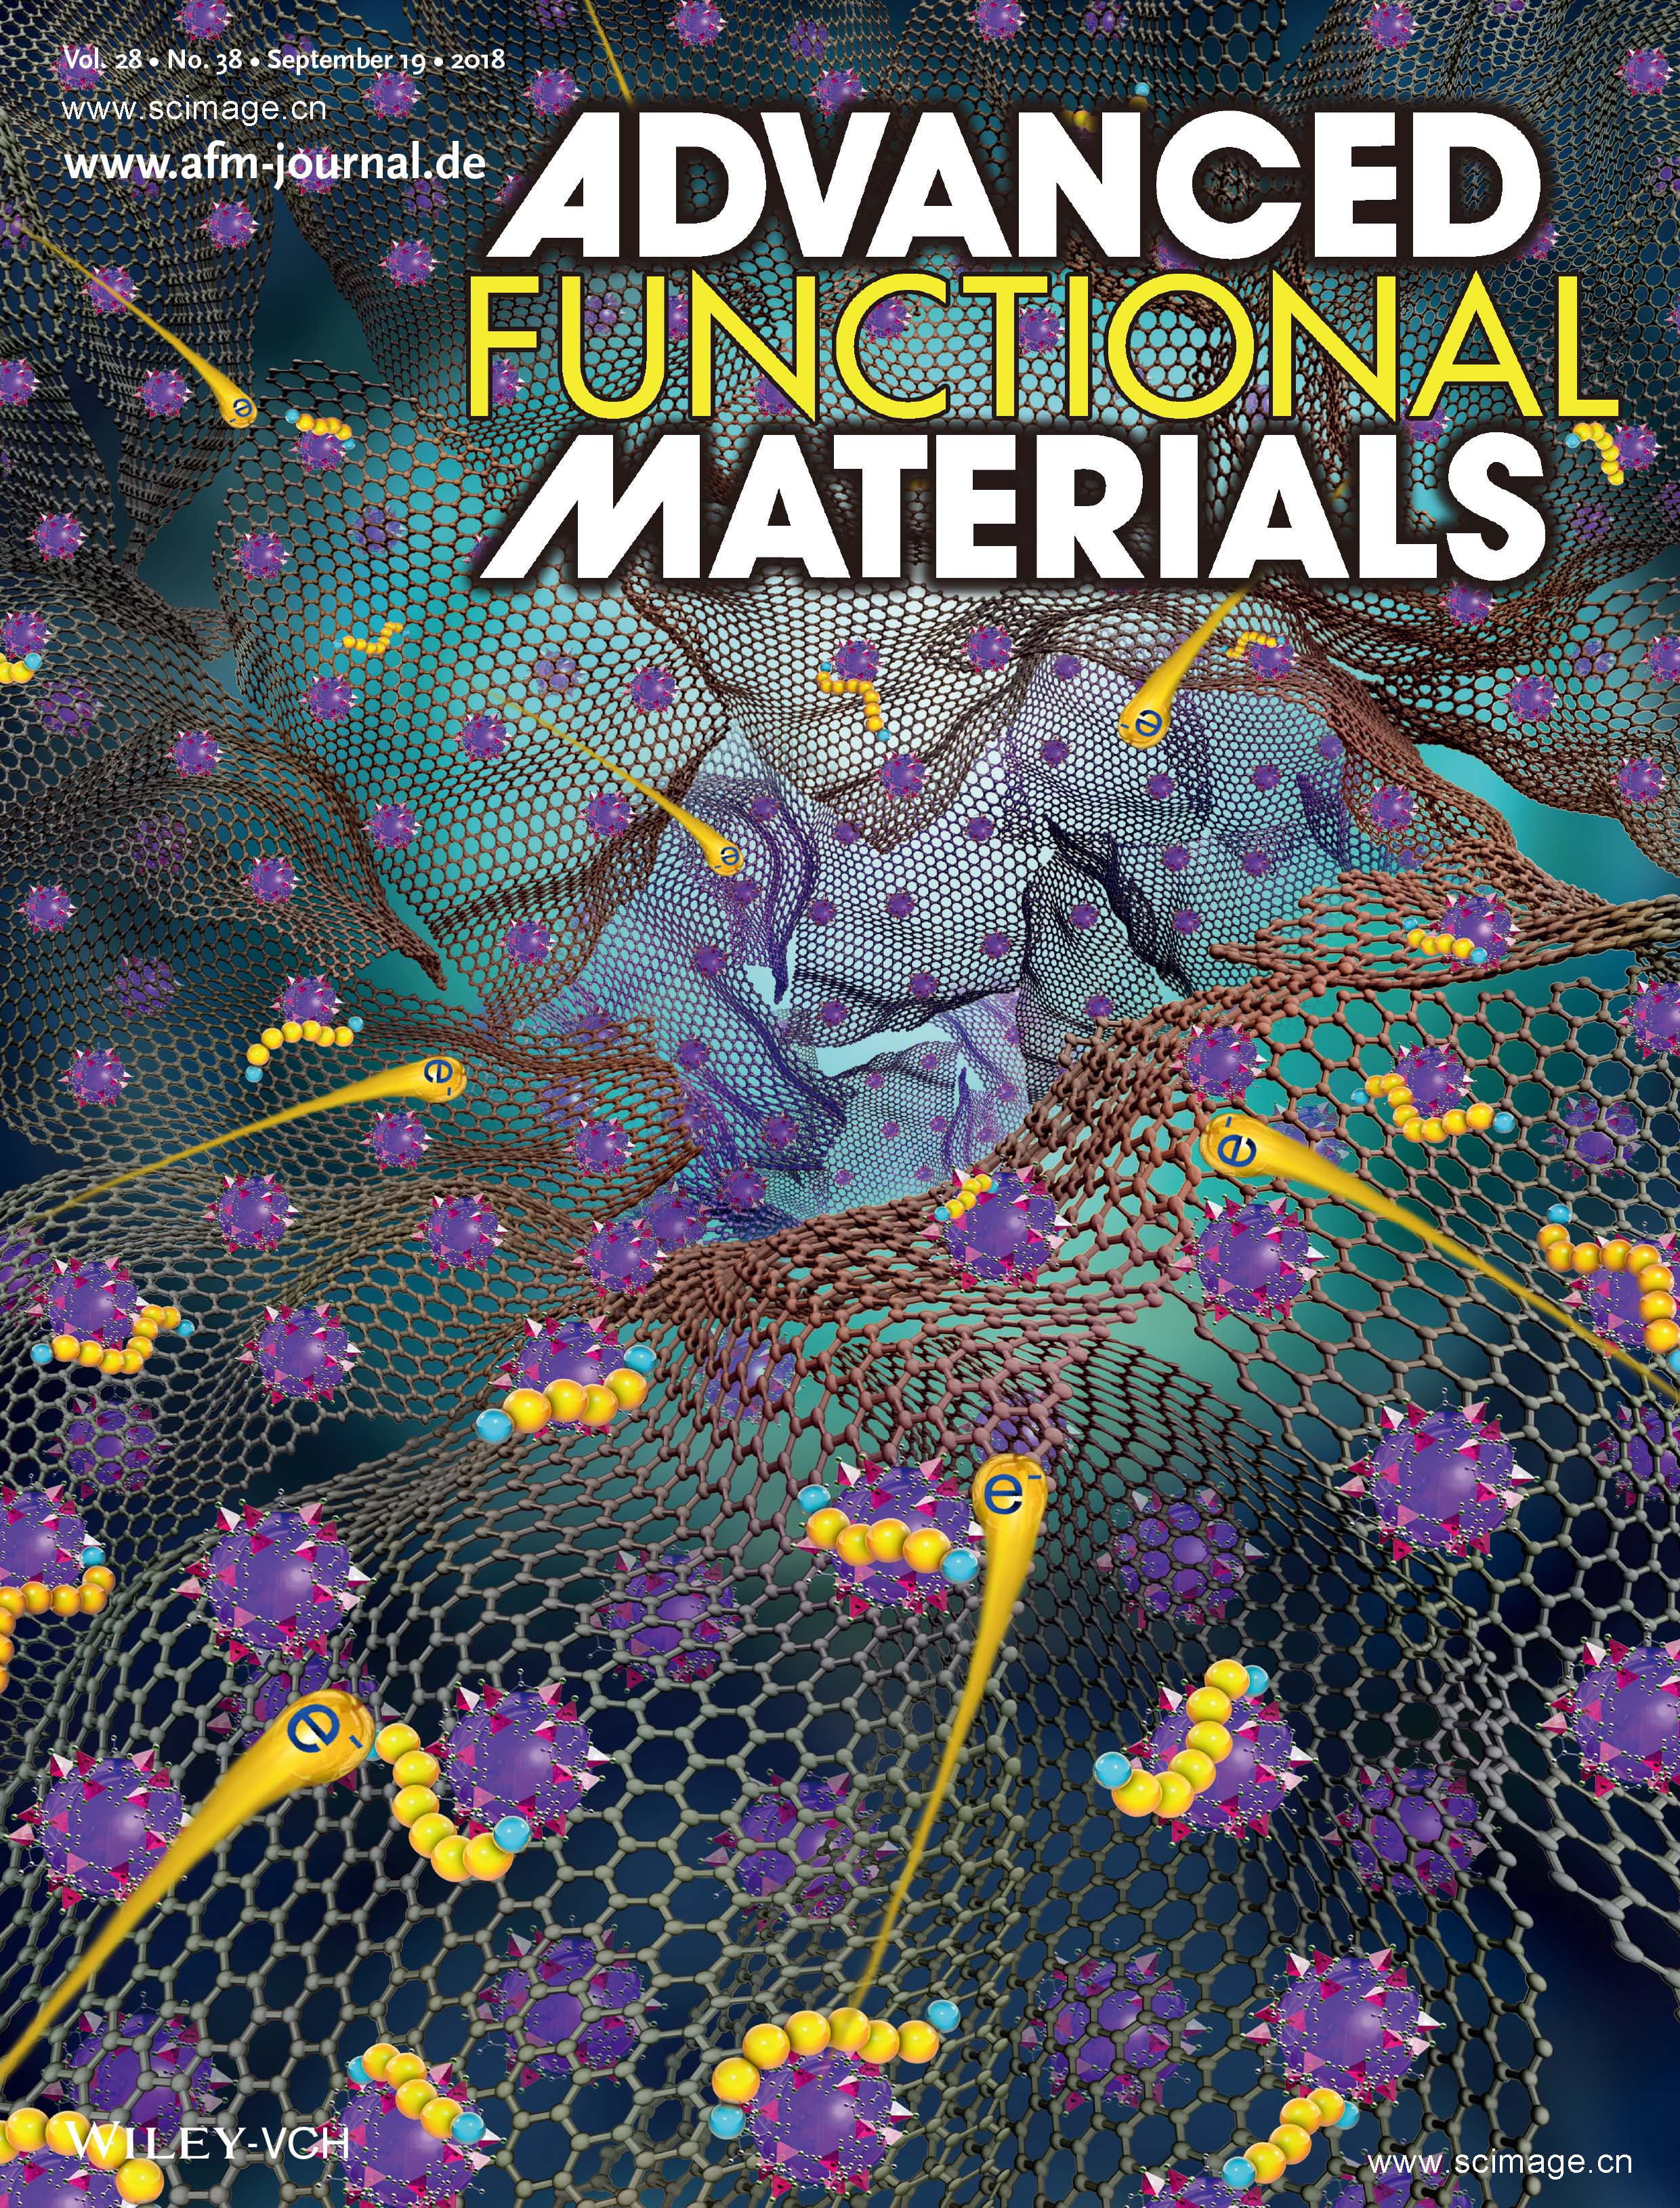 Lithium‐Sulfur Batteries: Metal–Organic Frameworks (MOFs)‐Derived Nitrogen‐  Doped Porous Carbon Anchored on Graphene with Multifunctional Effects for Lithium–Sulfur   Batteries